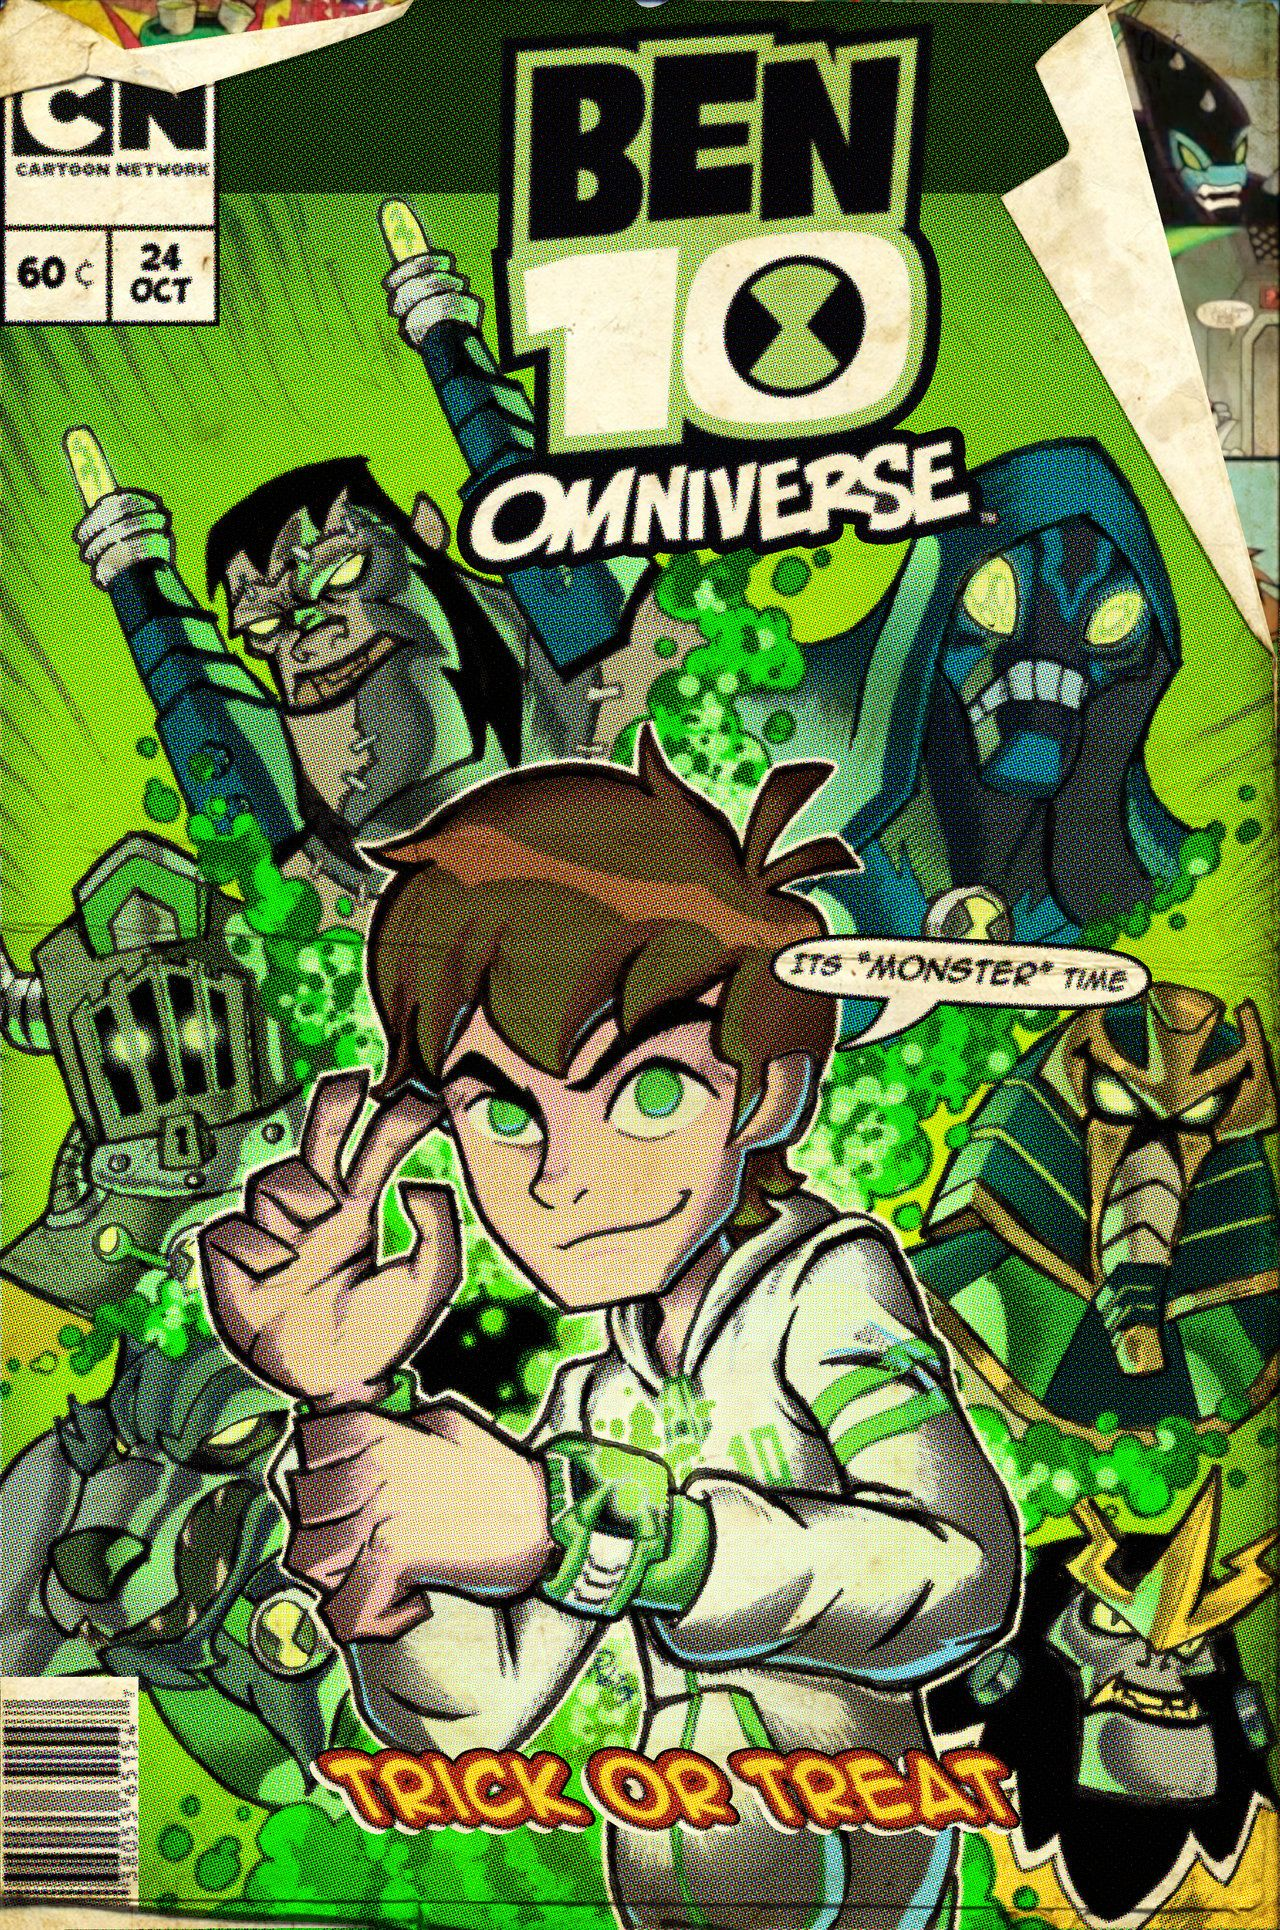 Comic Covers Heros Groups Google Search Ben 10 Comics Ben 10 Ben 10 Omniverse